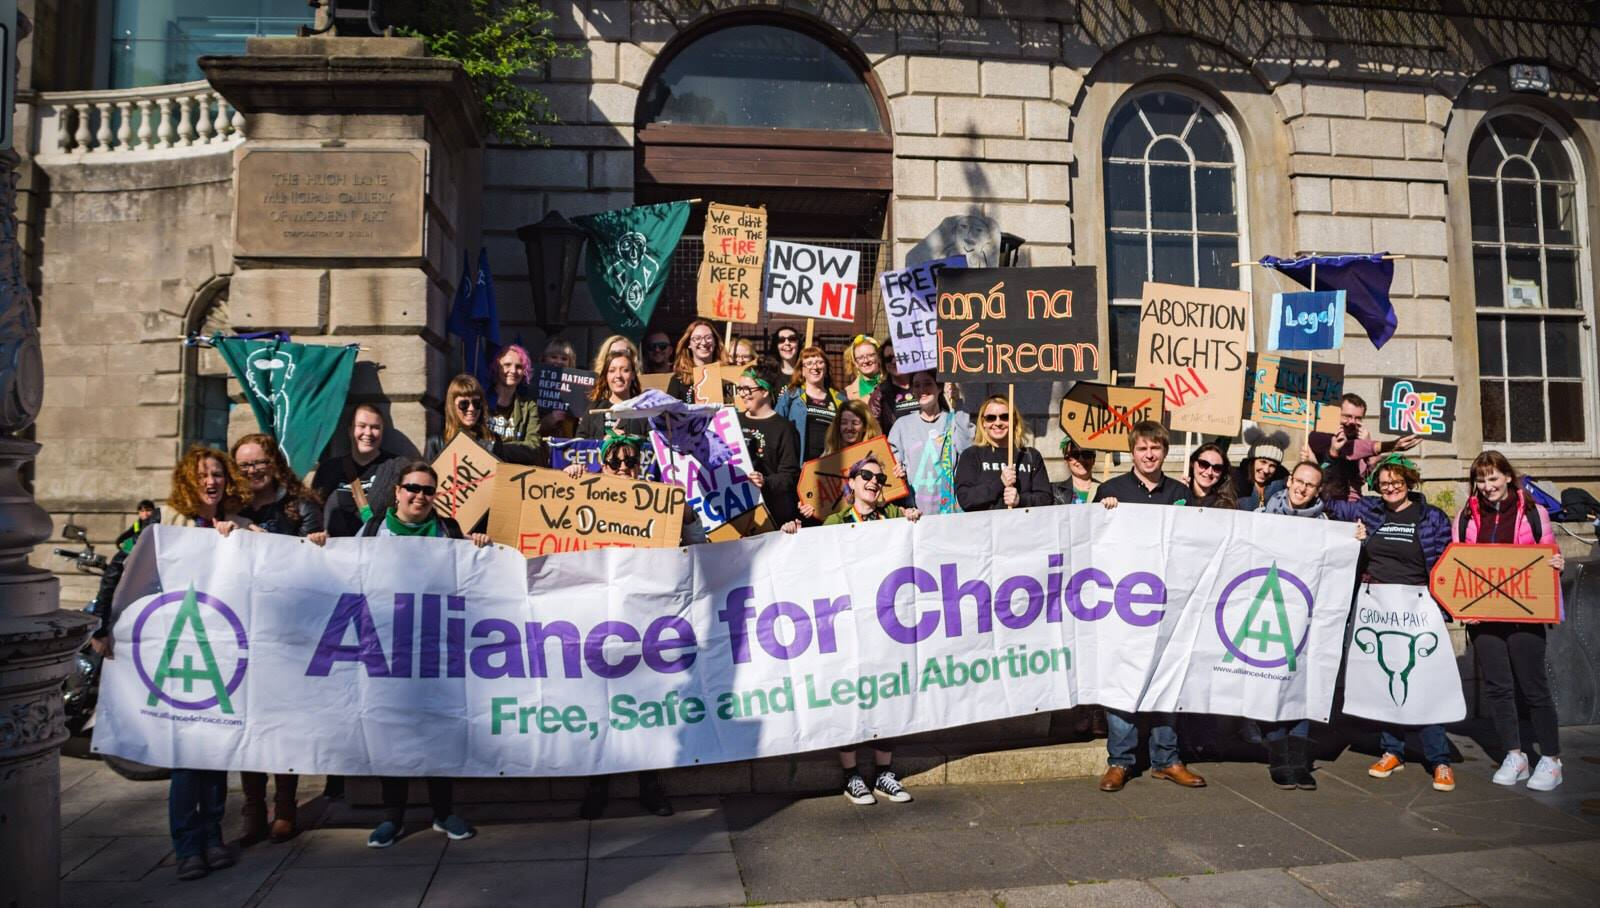 Alliance for Choice, Belfast at the Dublin Rally for Choice, September 29th 2018. Photo: Brendan Harkin